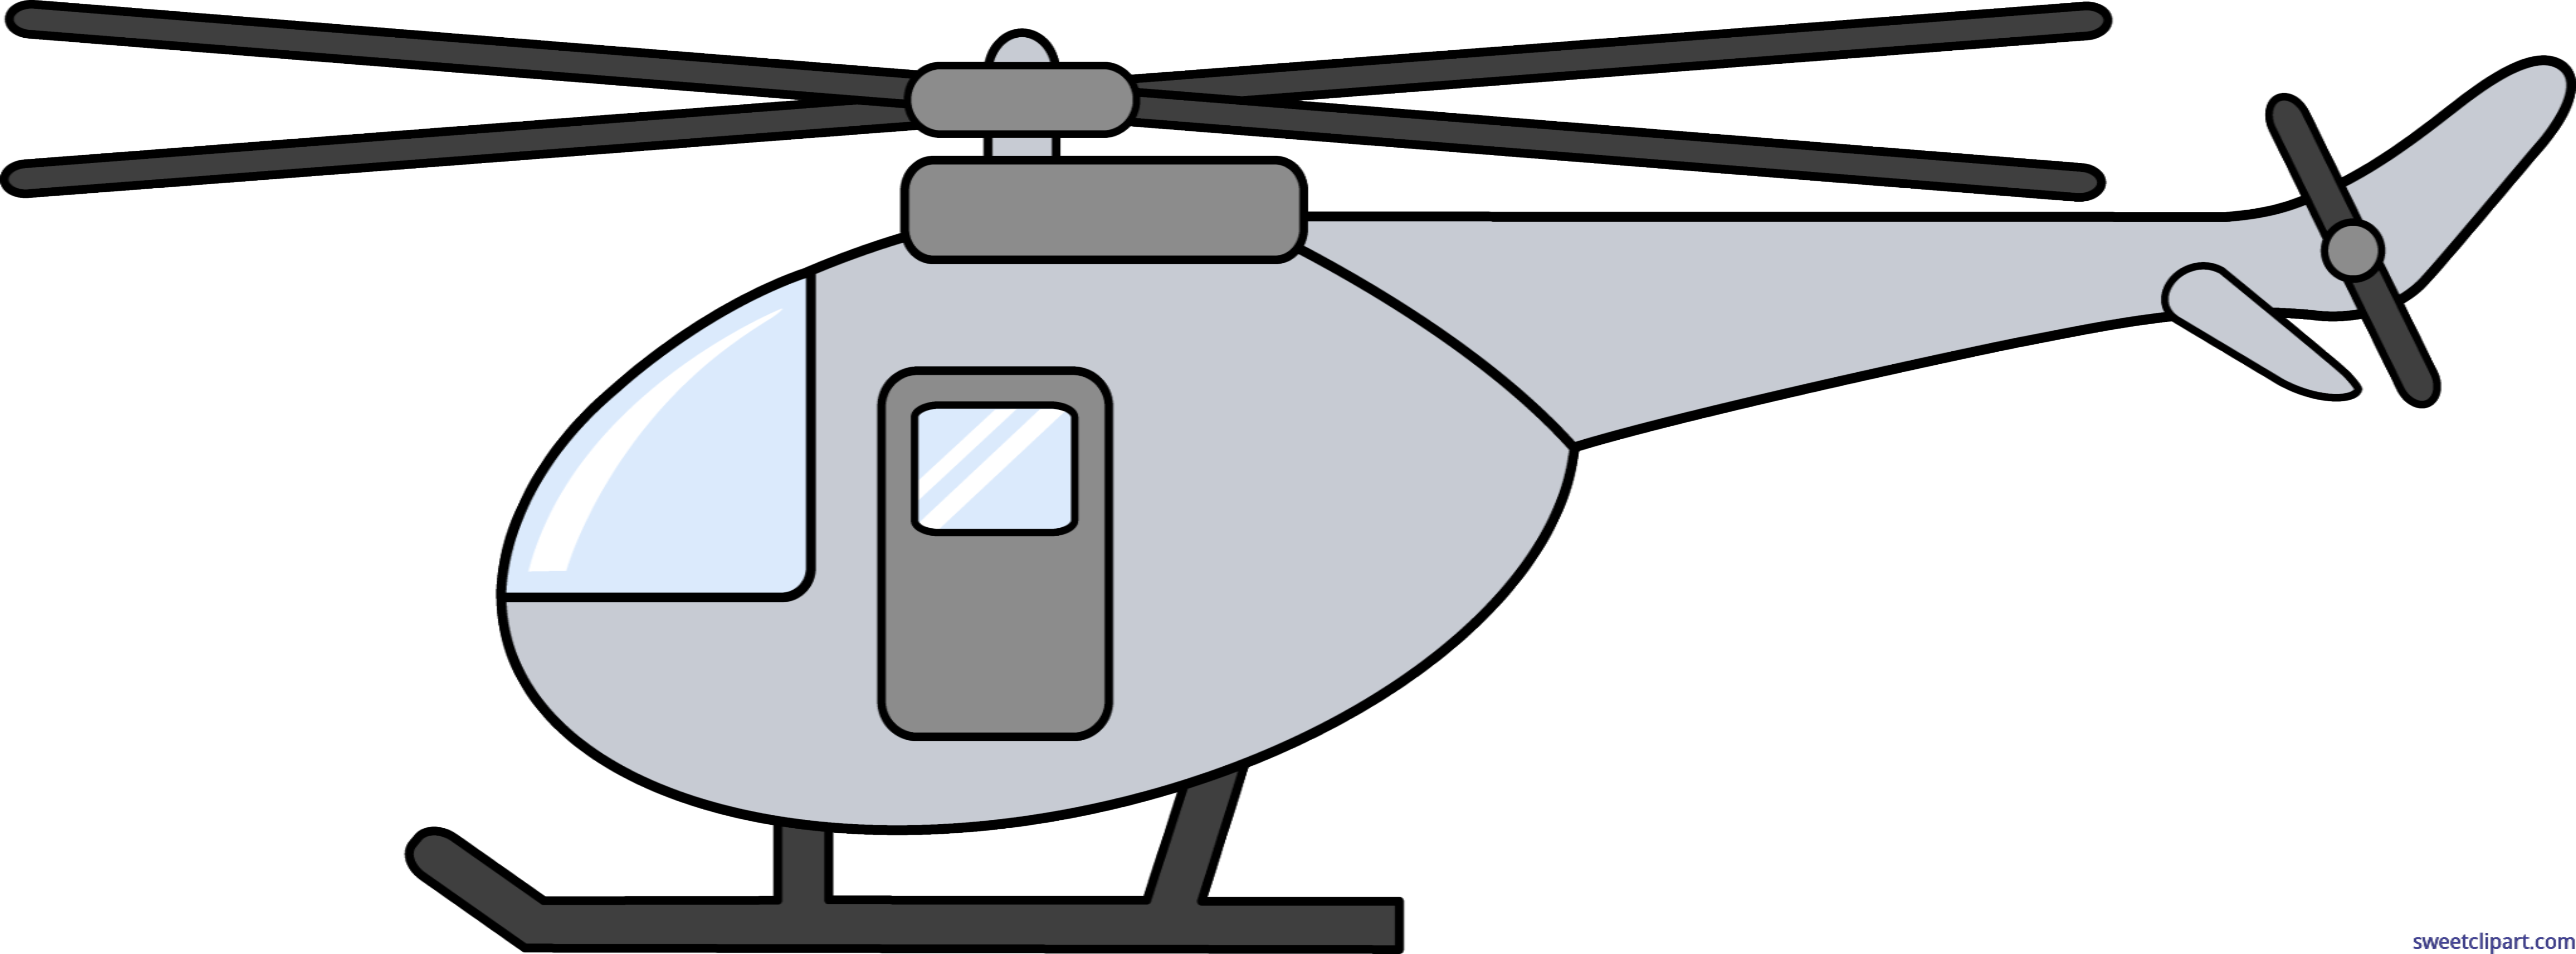 Helicopter clipart gray. All clip art archives